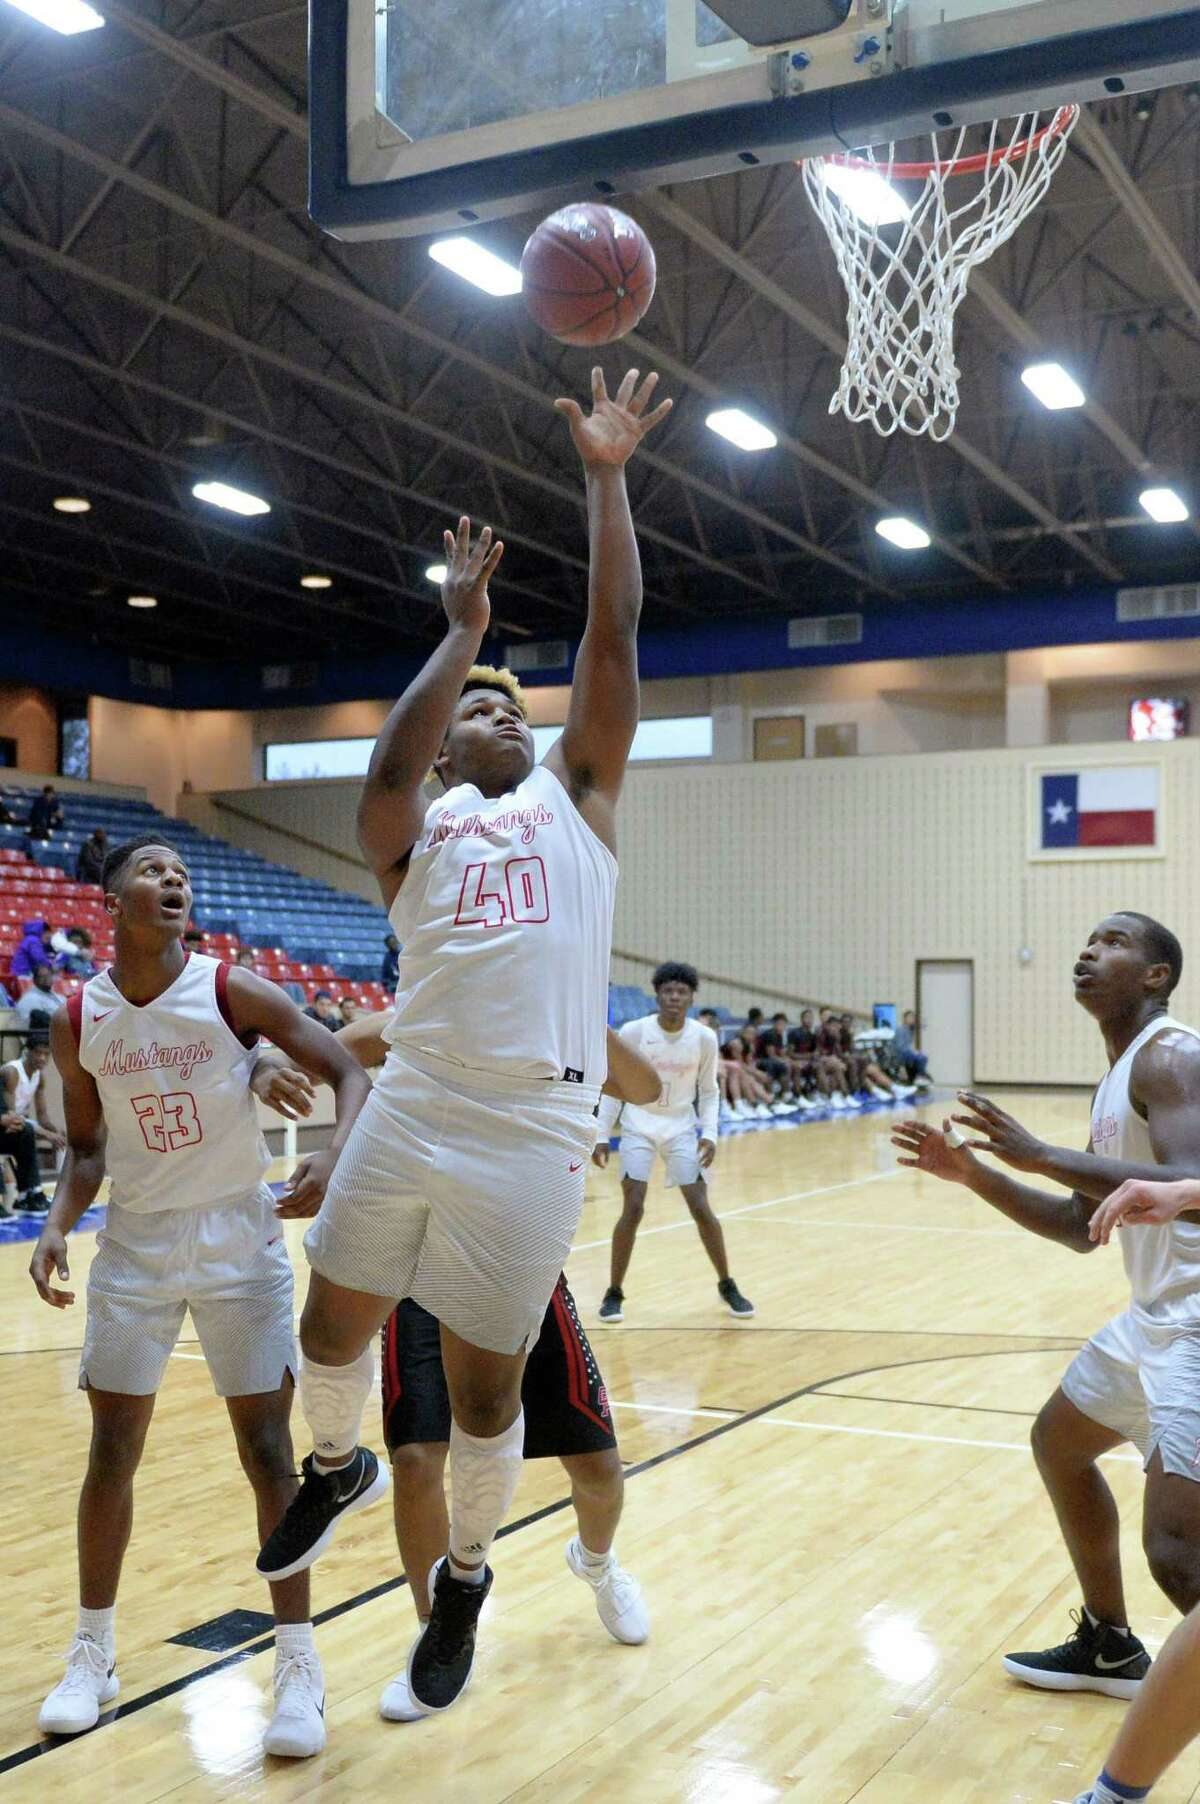 Dequarius Gibson (40) of Westfield drives to the hoop during pool play in the Fort Bend ISD Balfour Basketball Tournament between the Westfield Mustangs and the Oak Ridge War Eagles on Thursday December 7, 2017 at Wheeler Field House, Sugar Land, TX